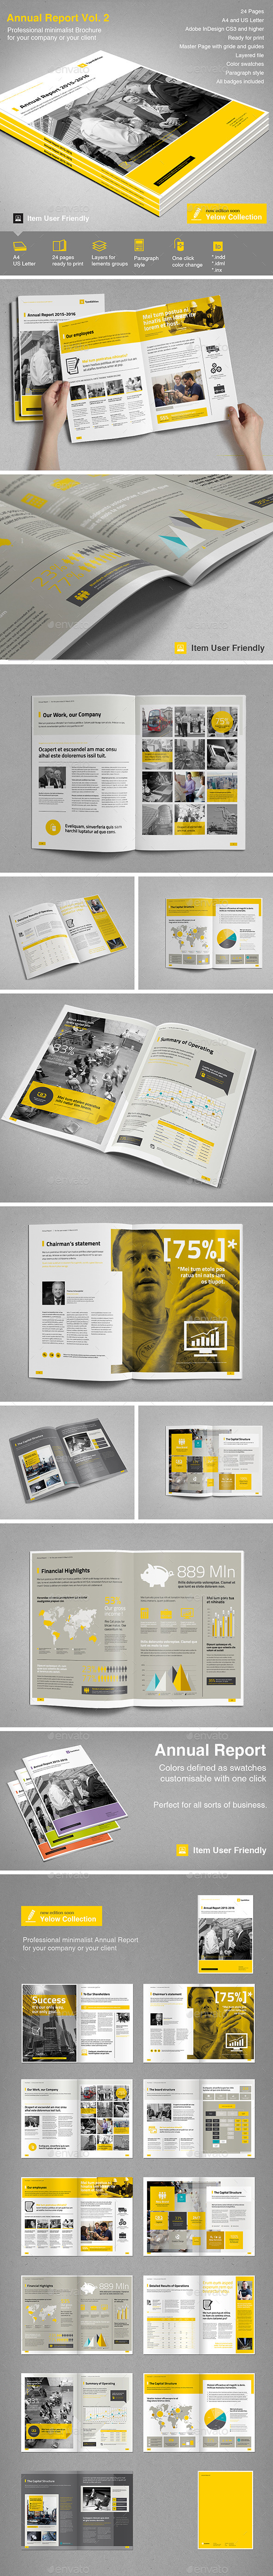 GraphicRiver Annual Report Vol 2 11895467